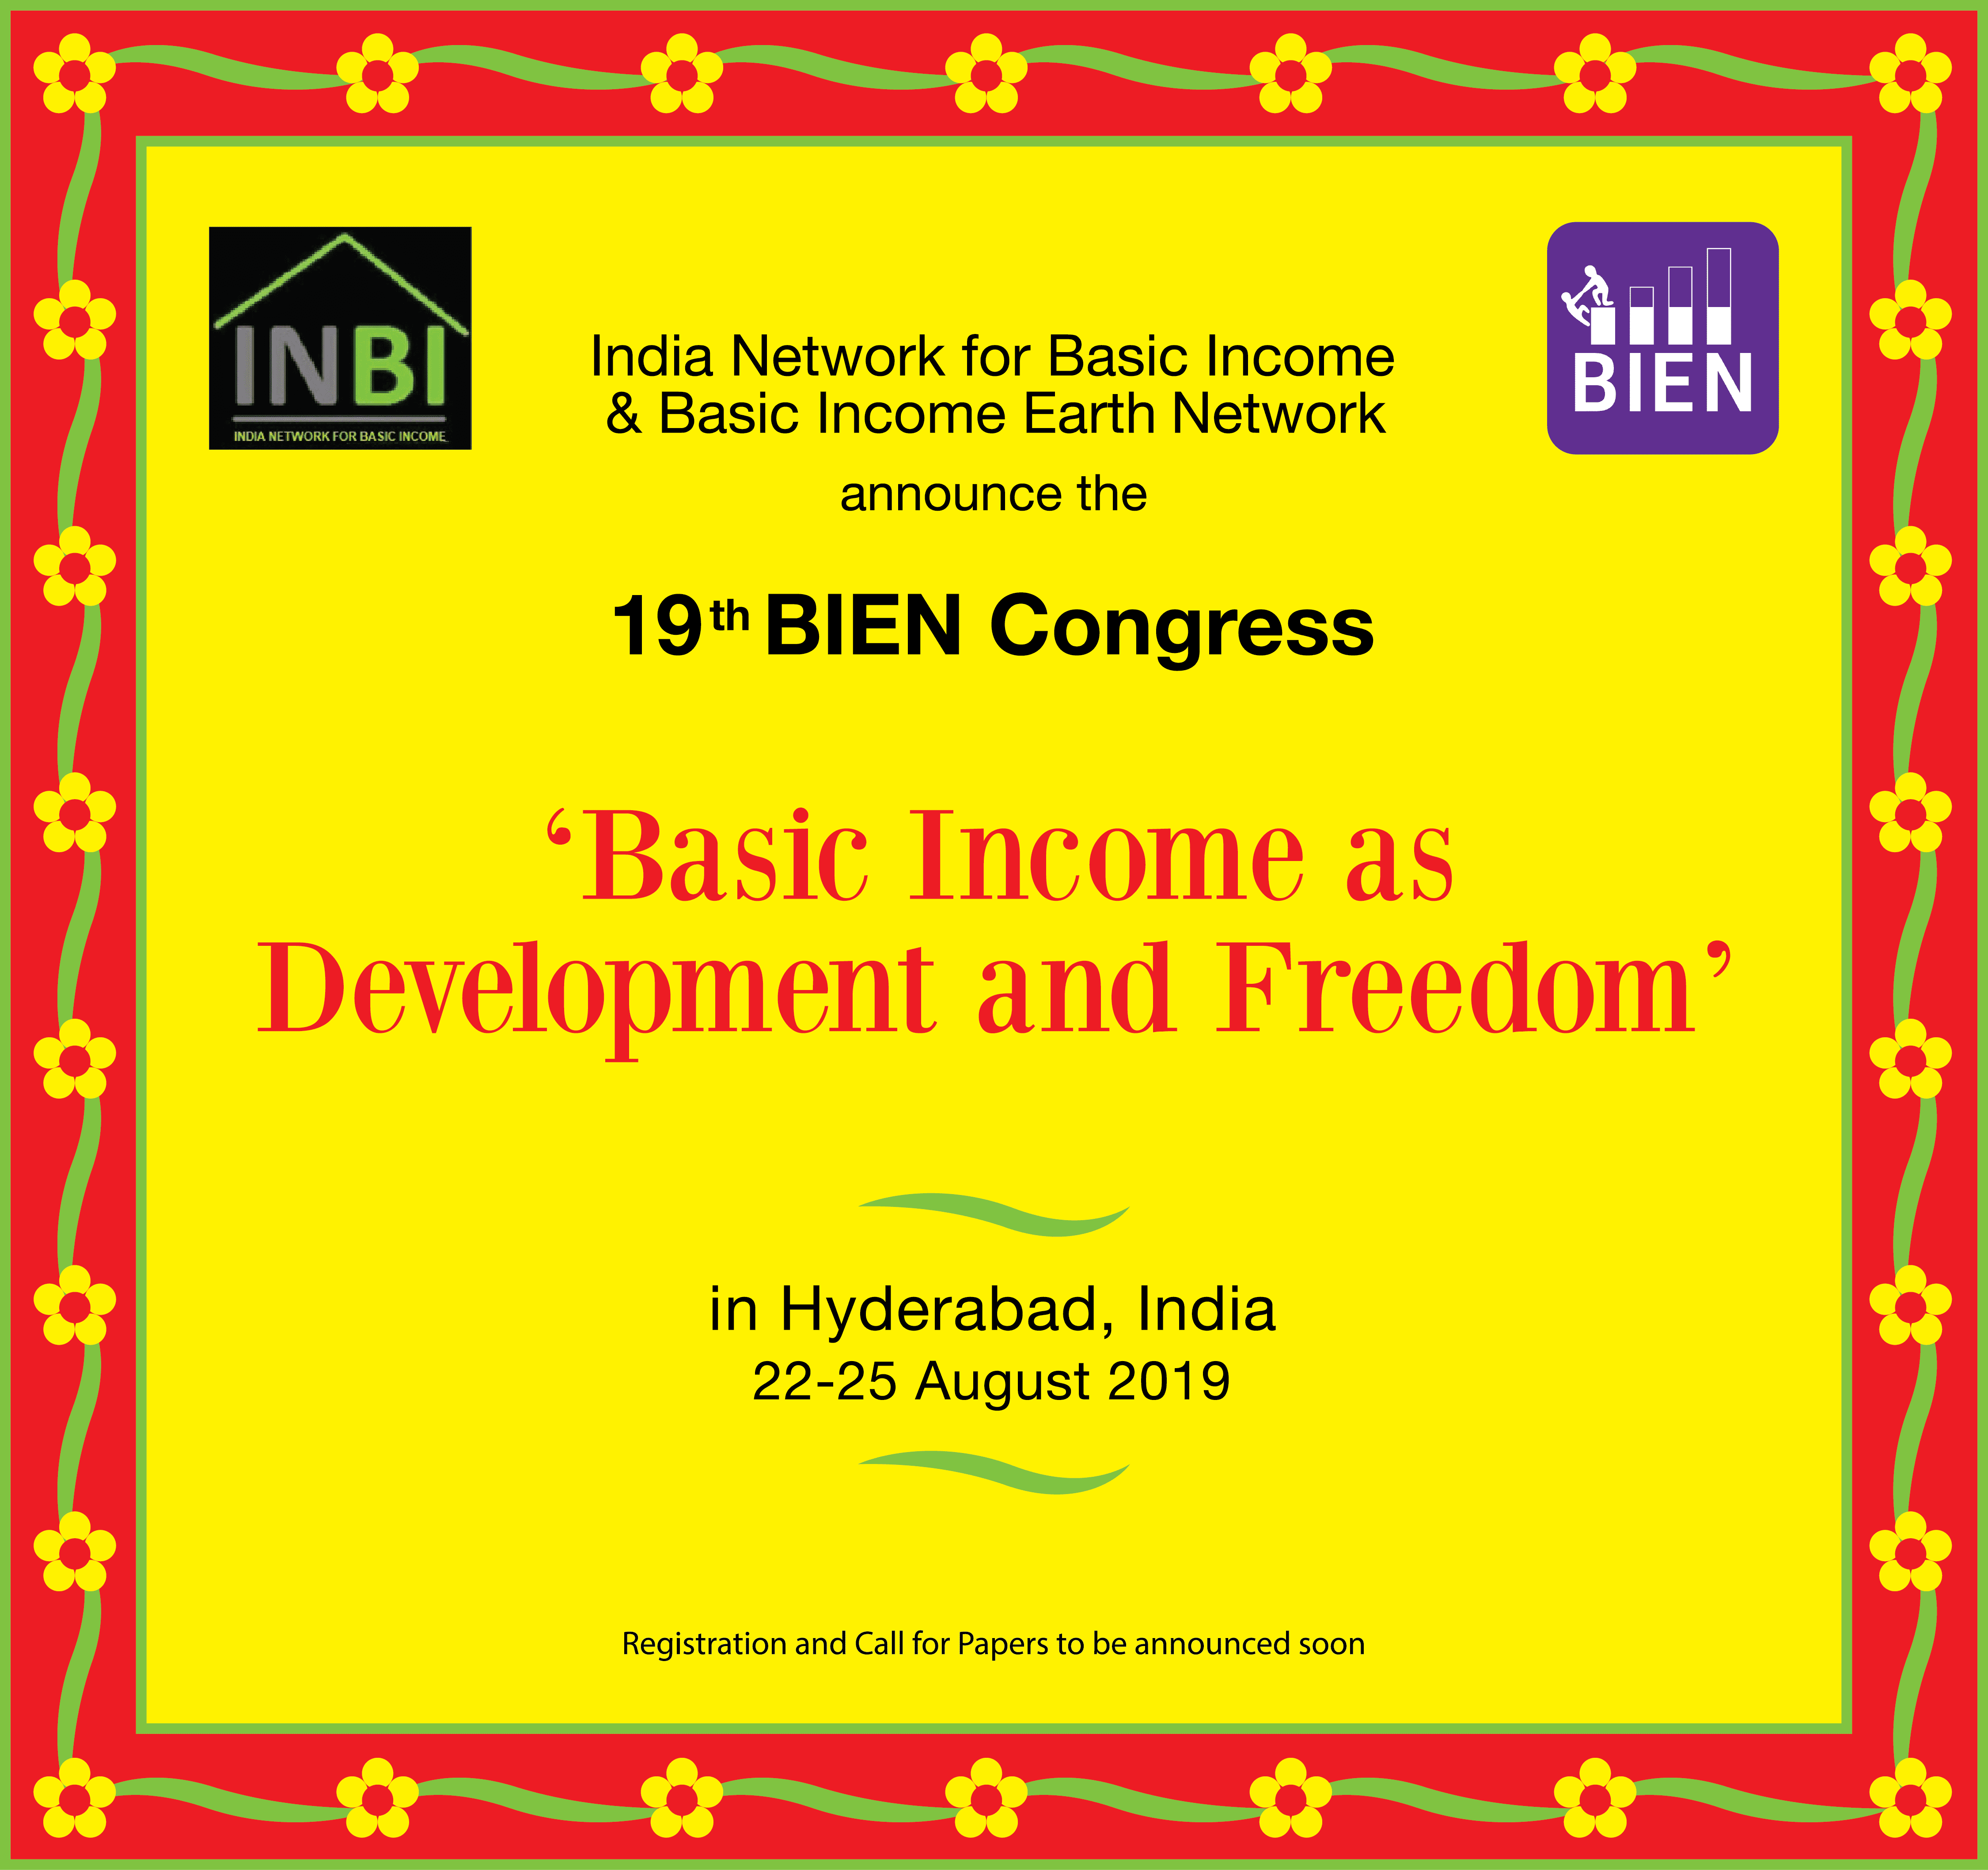 International: Basic Income Earth Conference 2019 announcement